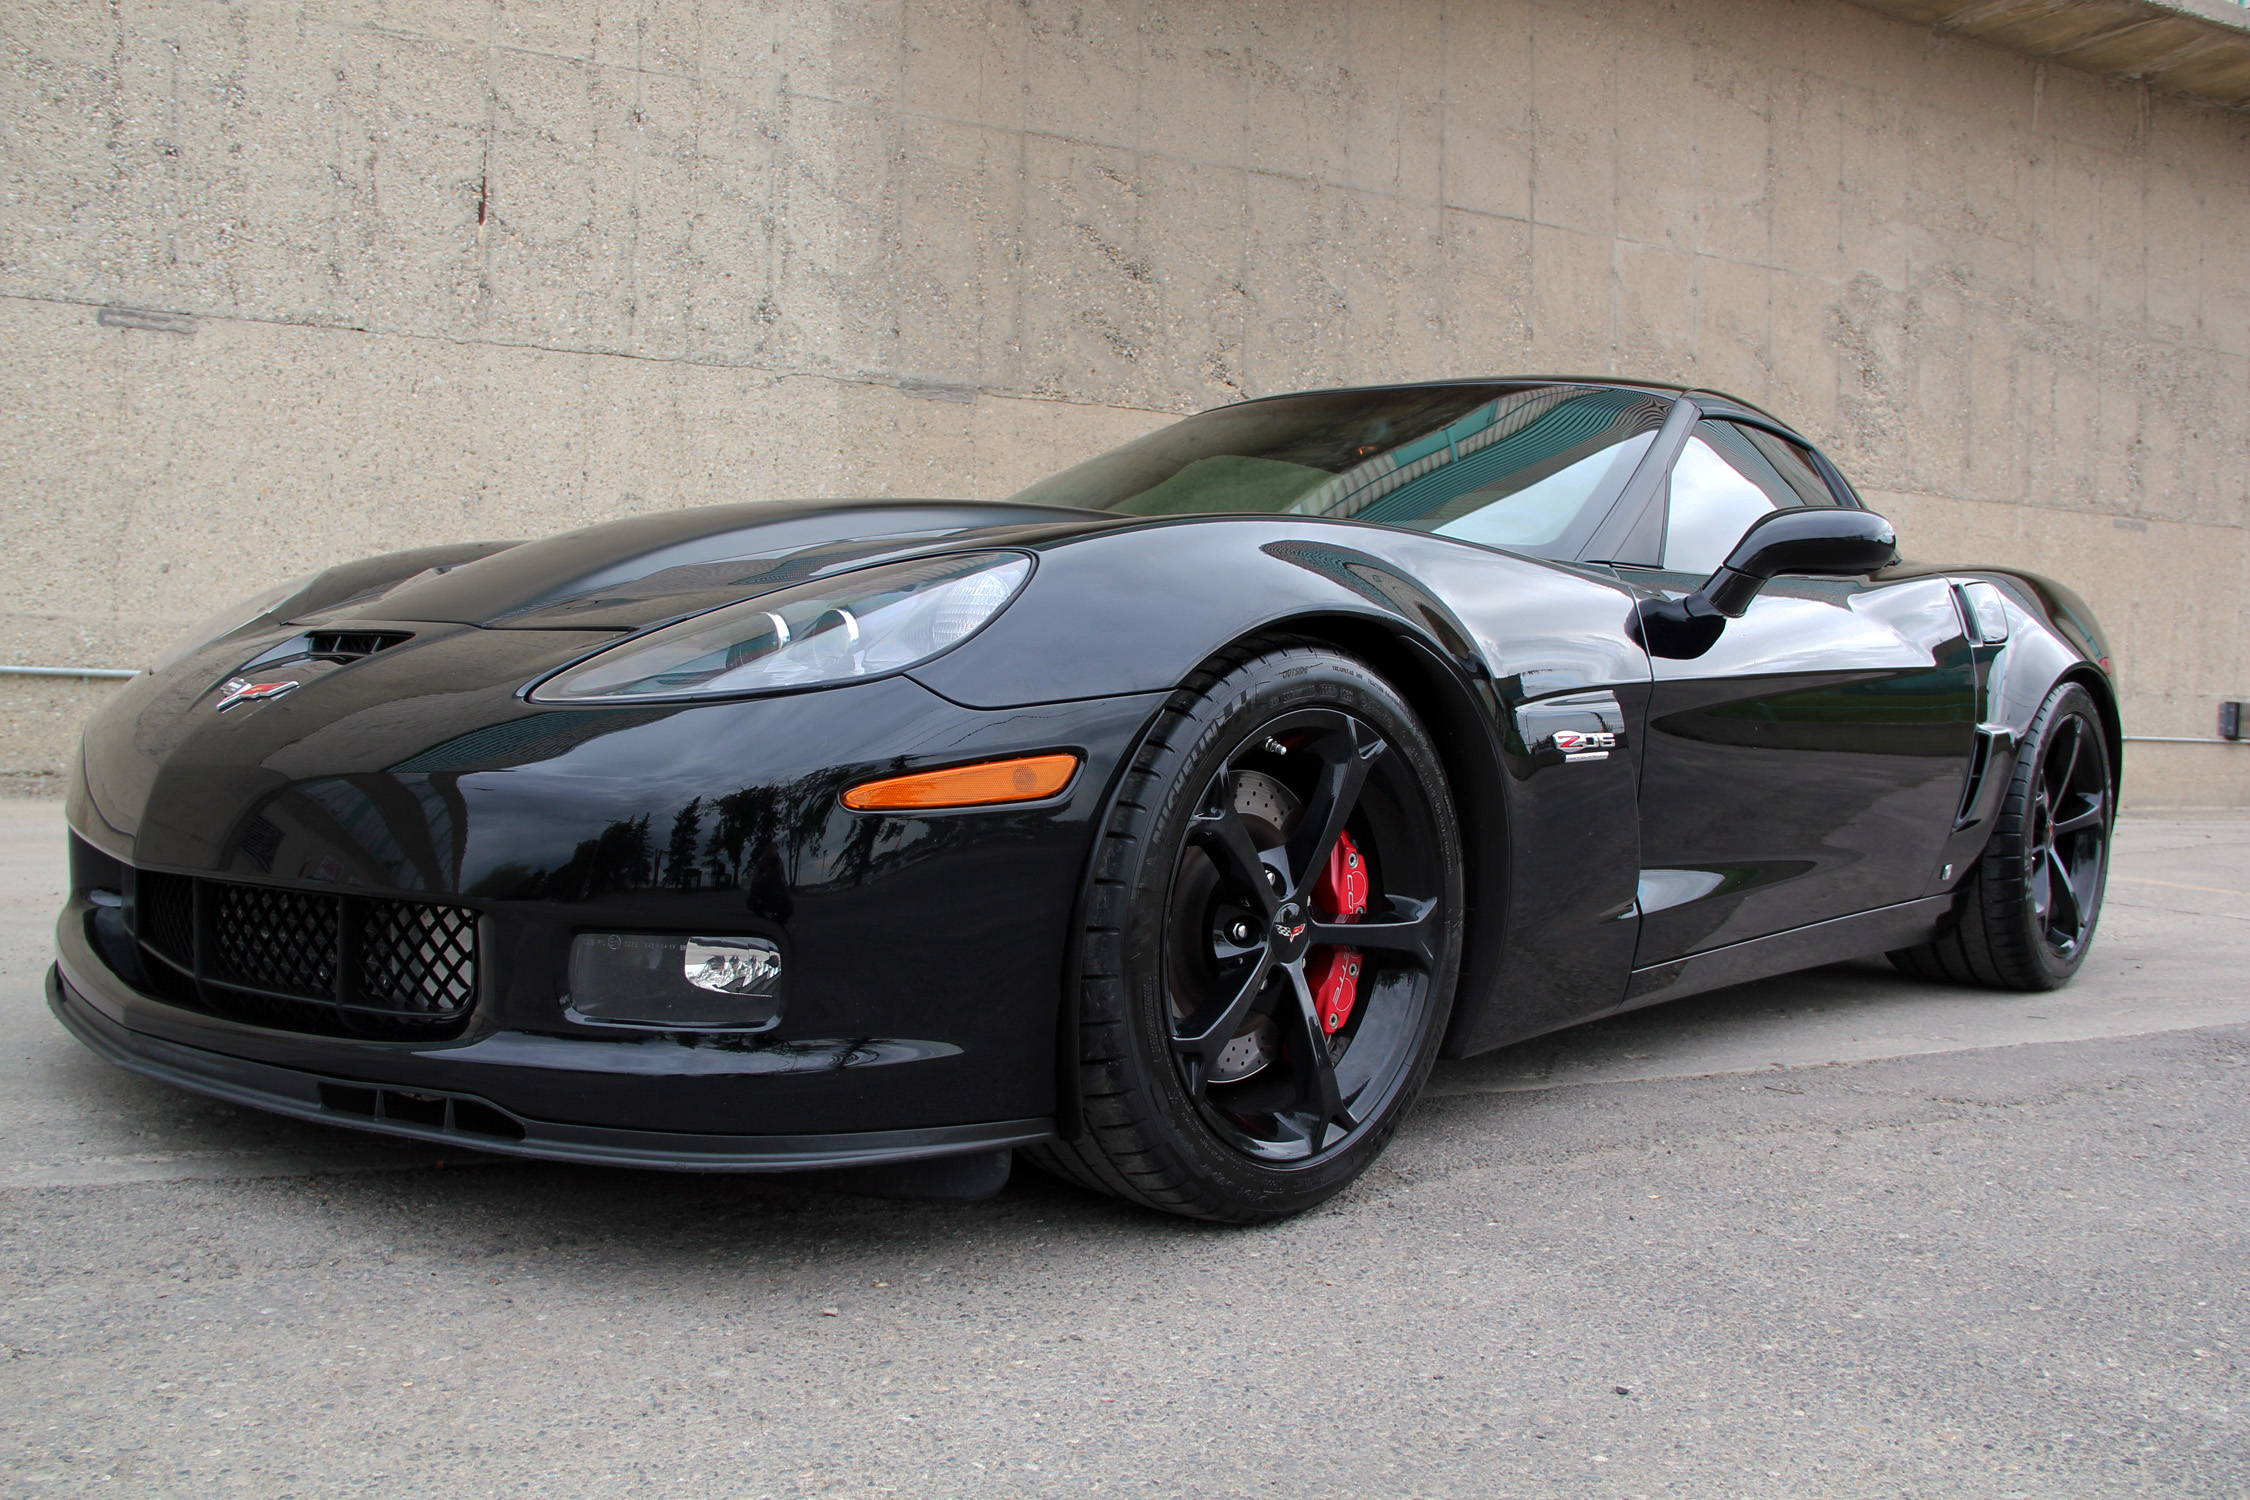 2009 corvette z06 supercharged the beast envision auto. Black Bedroom Furniture Sets. Home Design Ideas